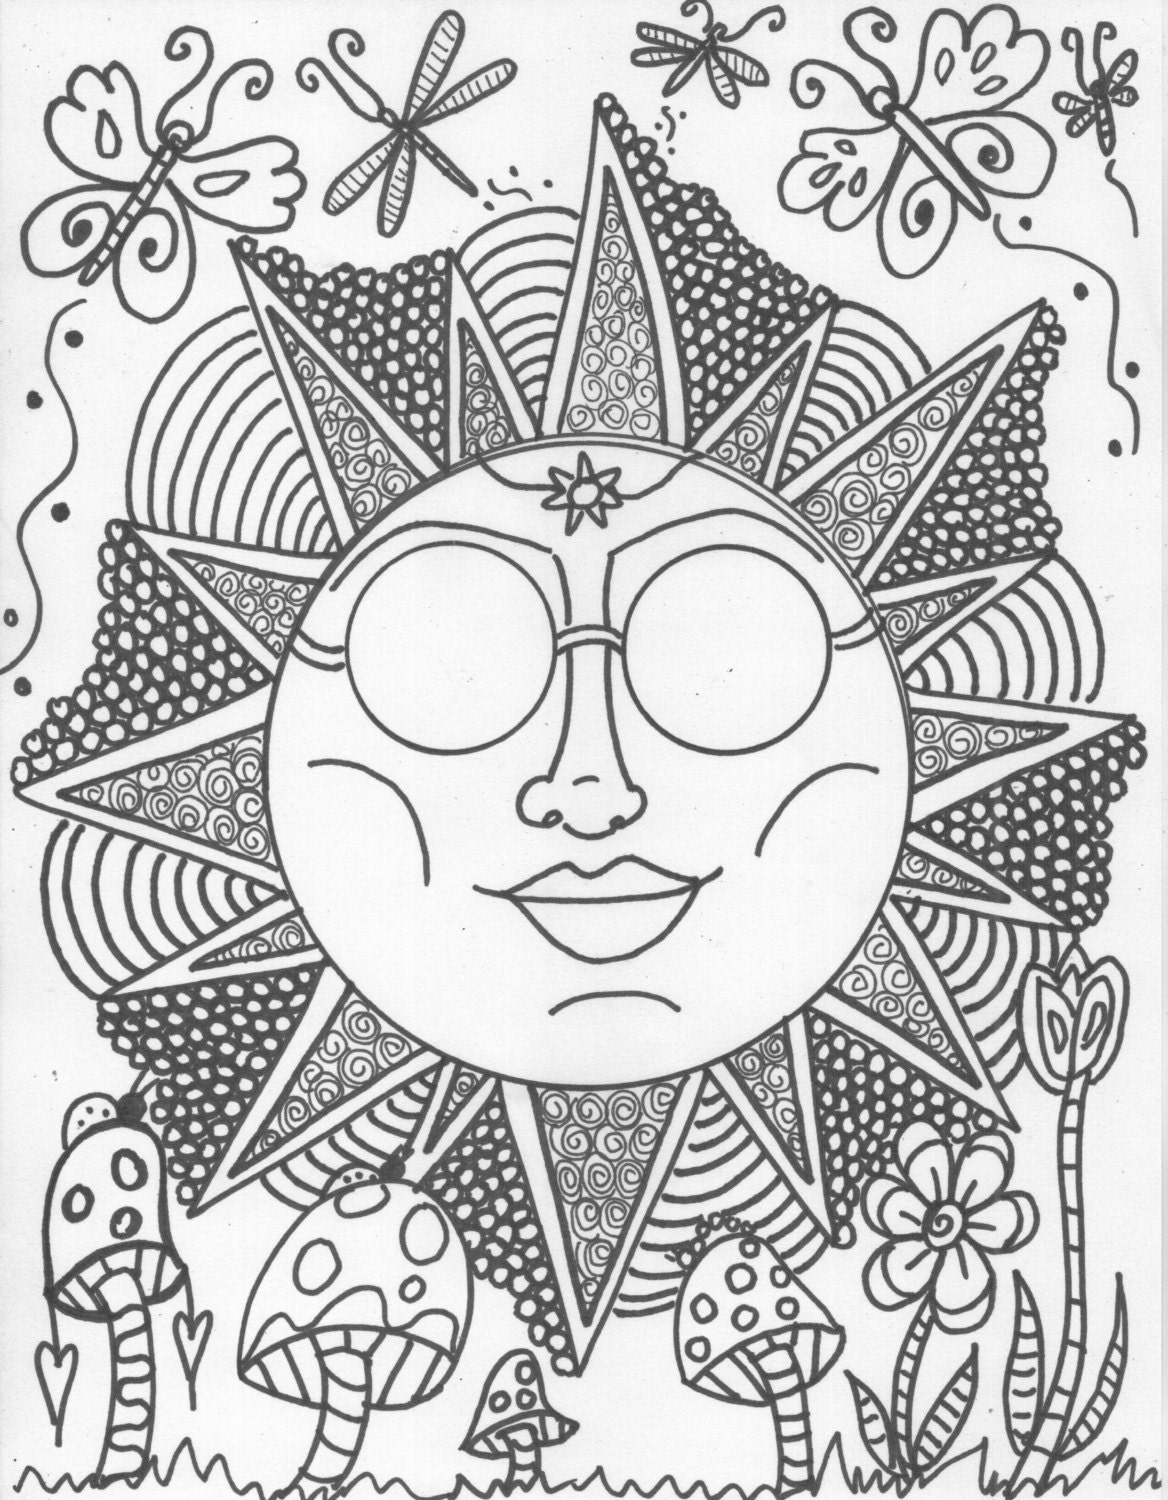 Hippie Coloring Pages For Adults : Hippie custom coloring book pages by